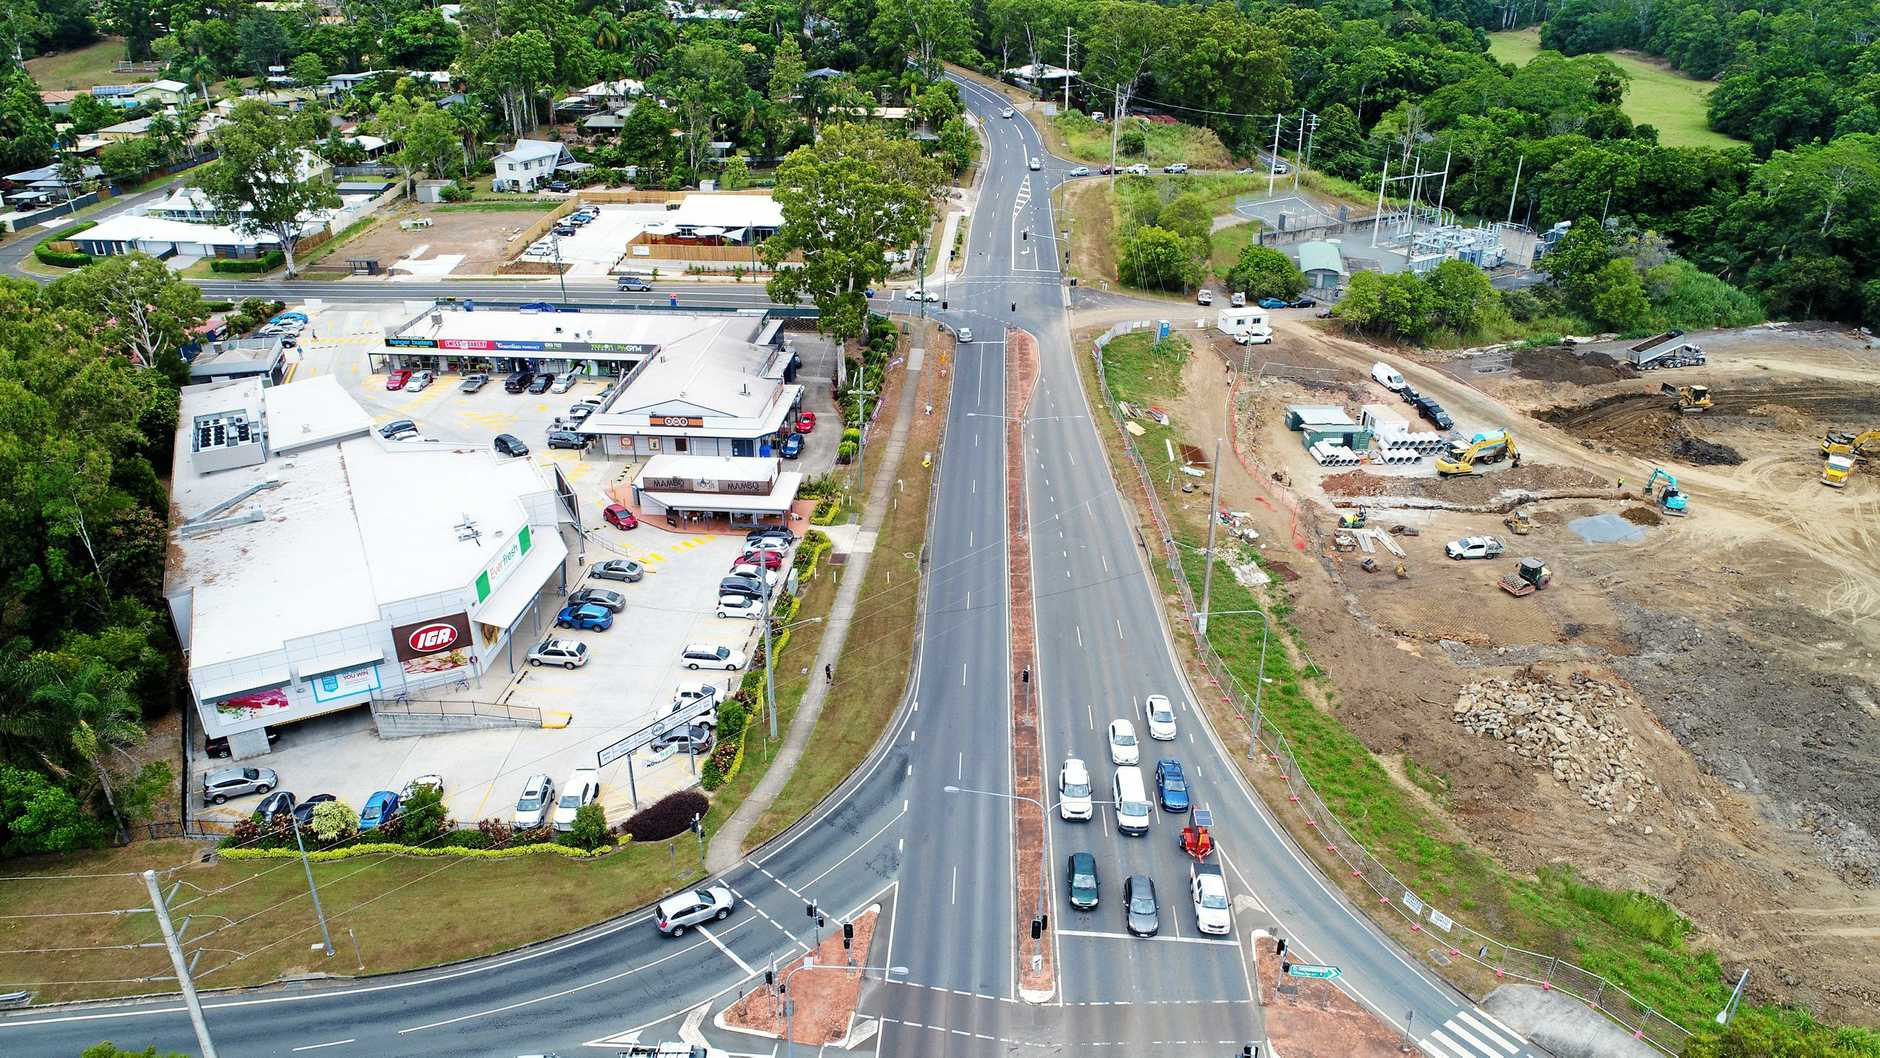 Construction of the new Coles shopping centre across the road from the IGA at Jones Road Buderim.